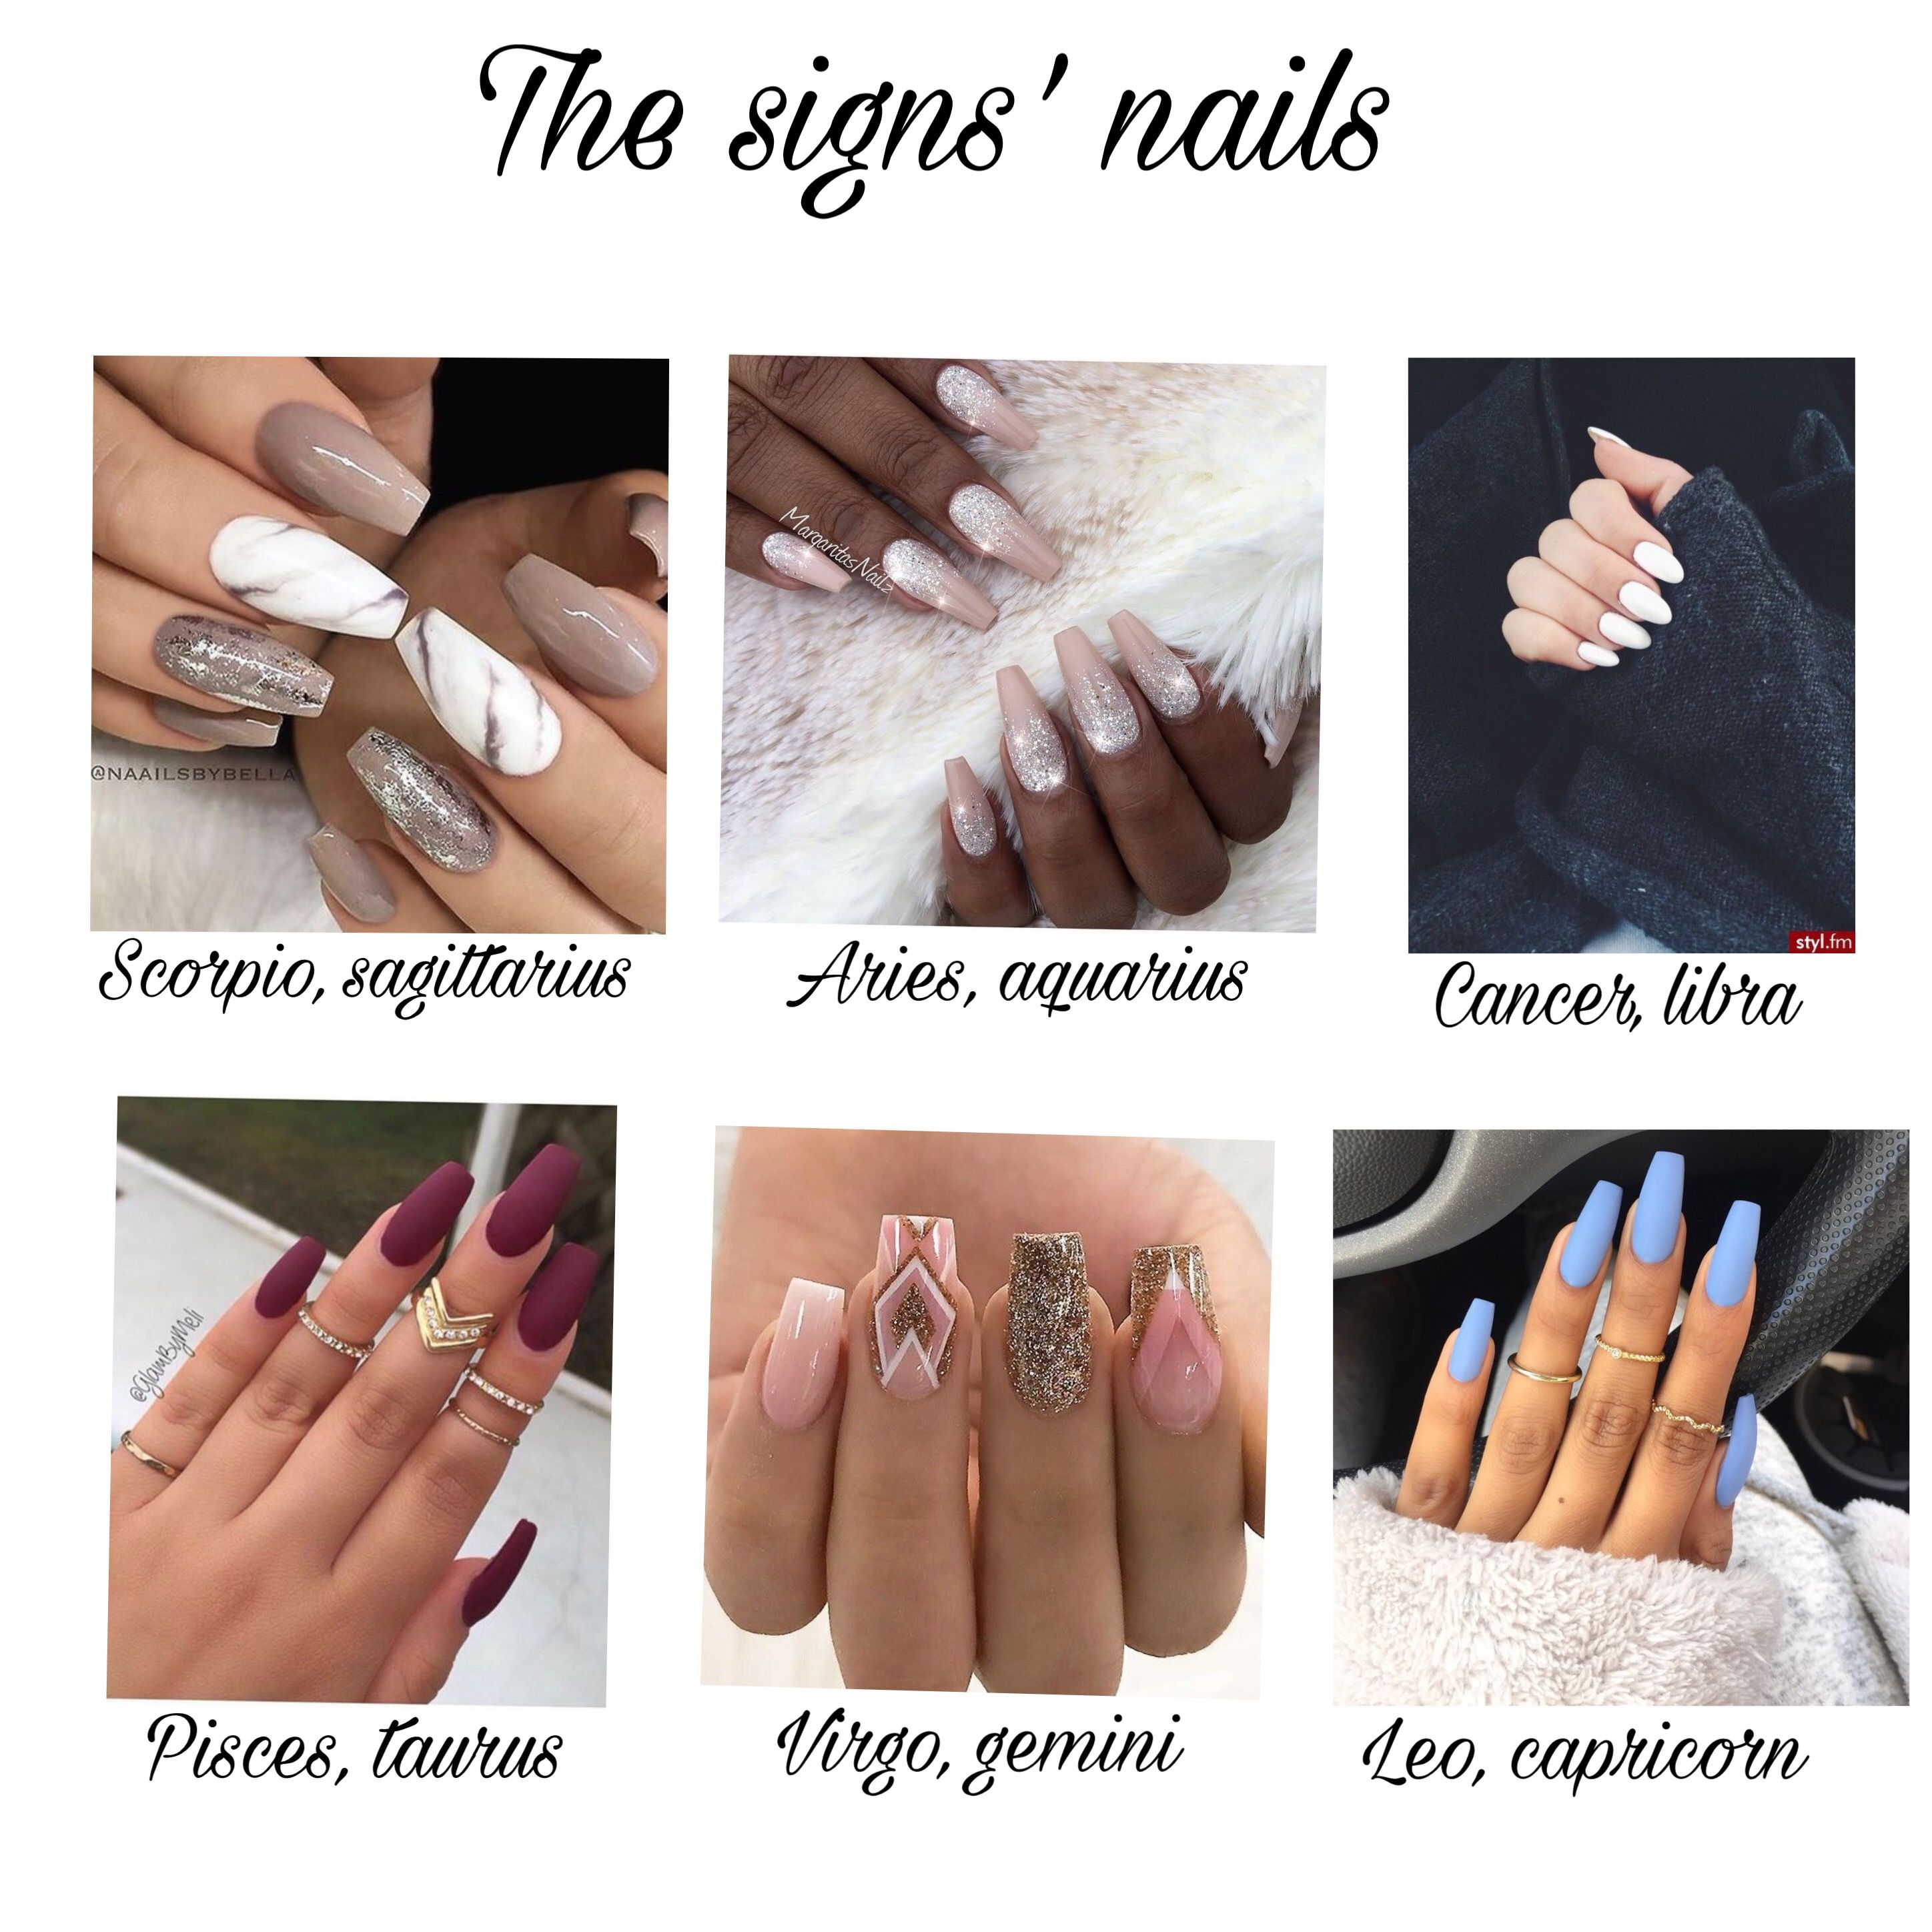 Pin By Sherrie On Zodiac Stories Aquarius And Cancer Zodiac Signs Horoscope Zodiac Signs